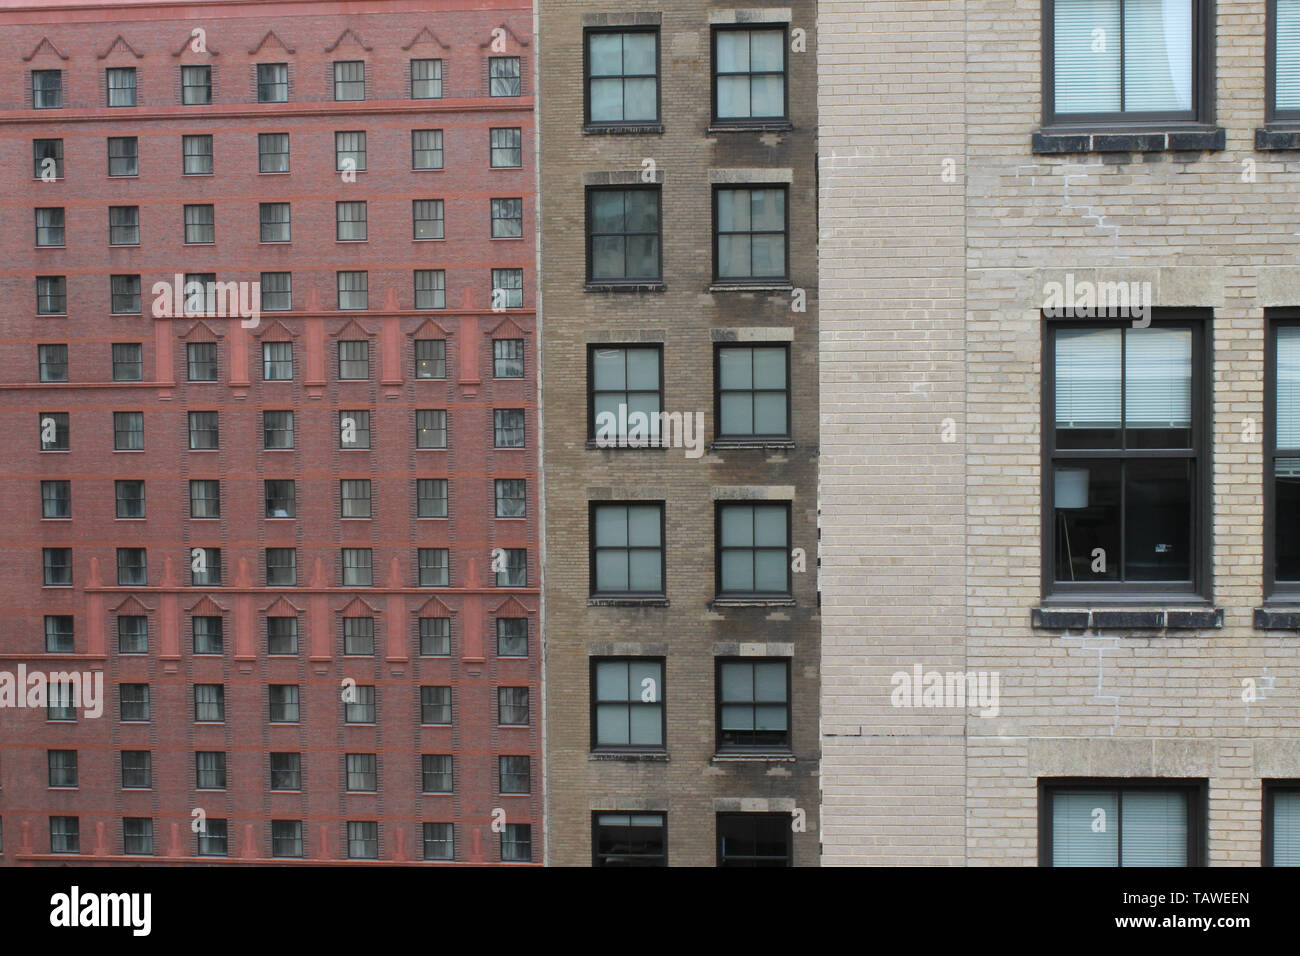 Three old brick buildings with lots of windows in downtown, the Loop, Chicago, Illinois, USA - Stock Image